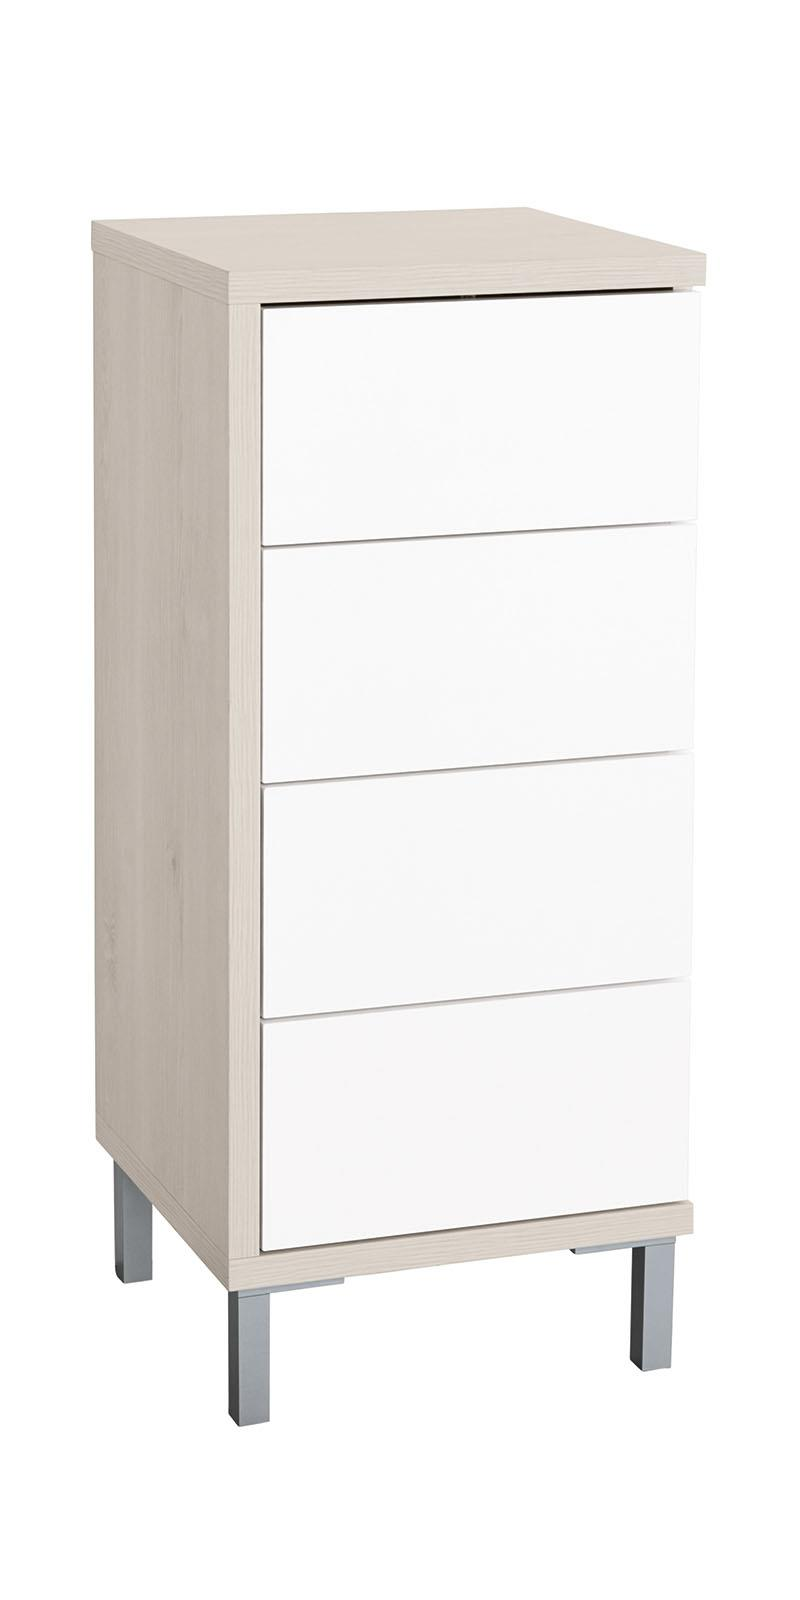 Bambus Kommode Bad Livarno Living Kommode Bad Kommode Weiss Lärche Kommoden Schrank